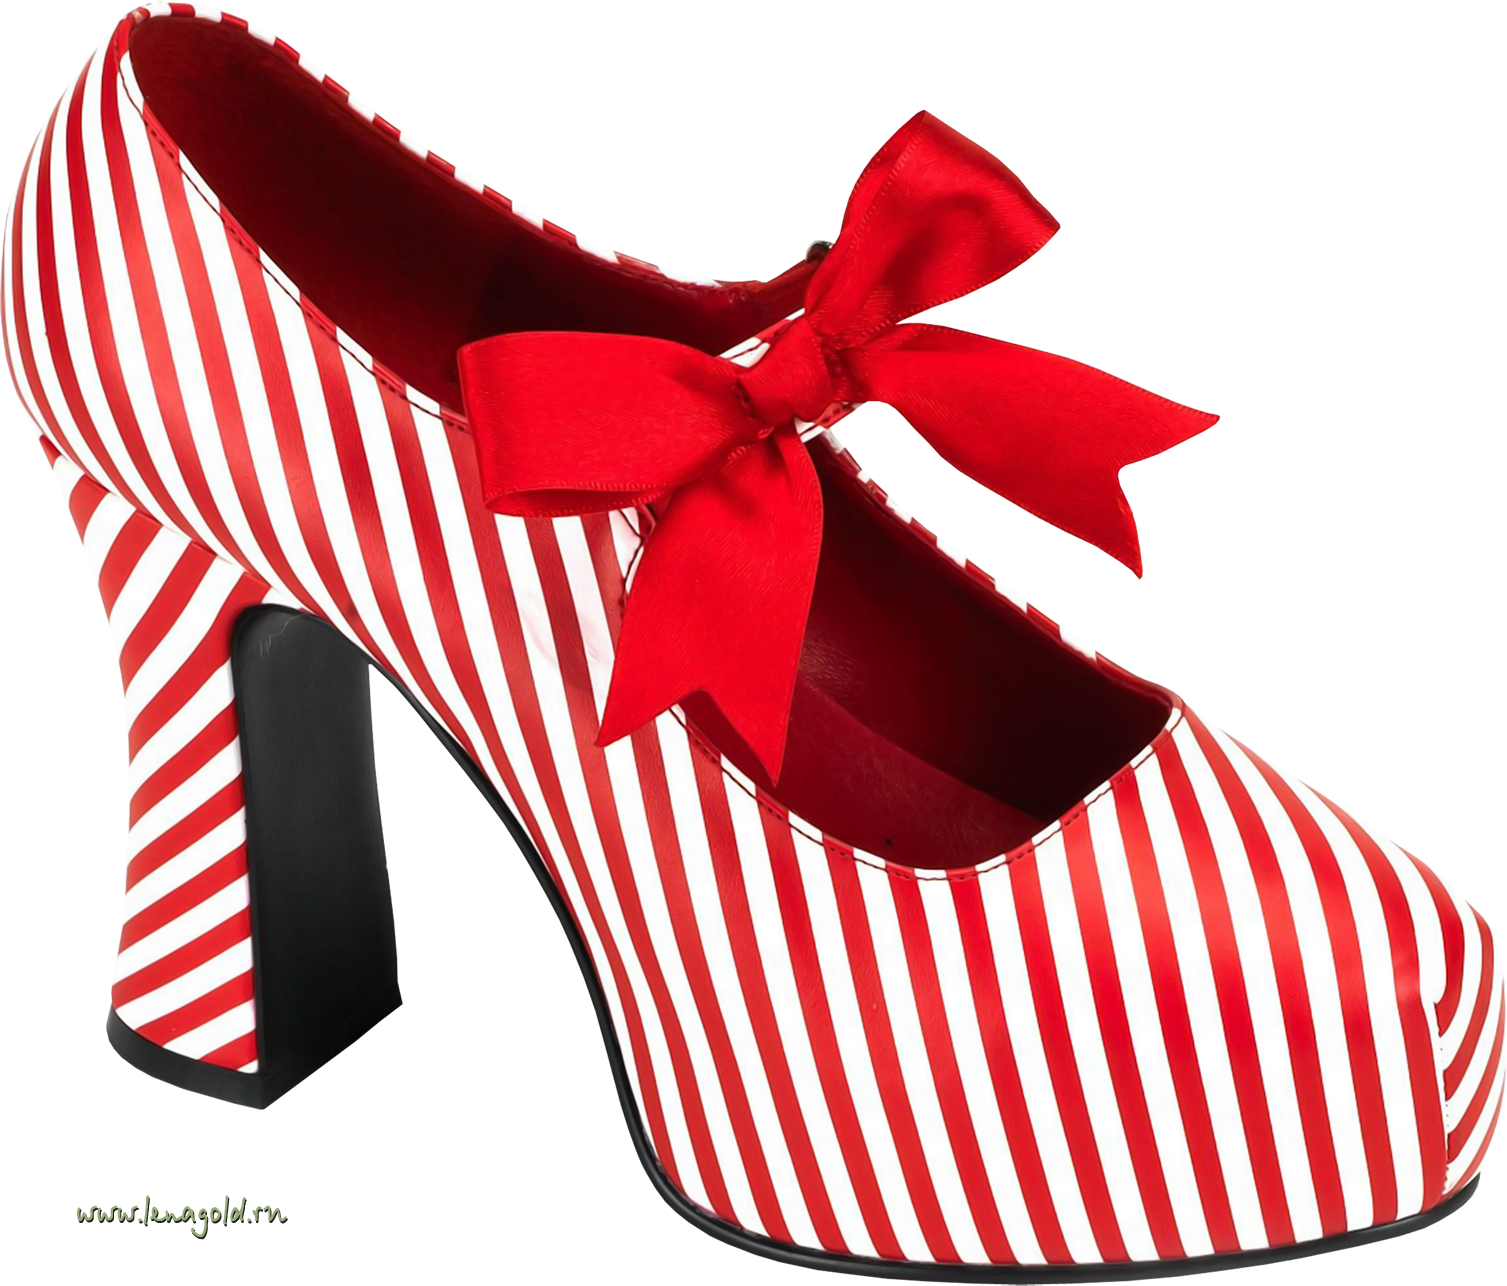 clipart women shoes transparent background collection #29928